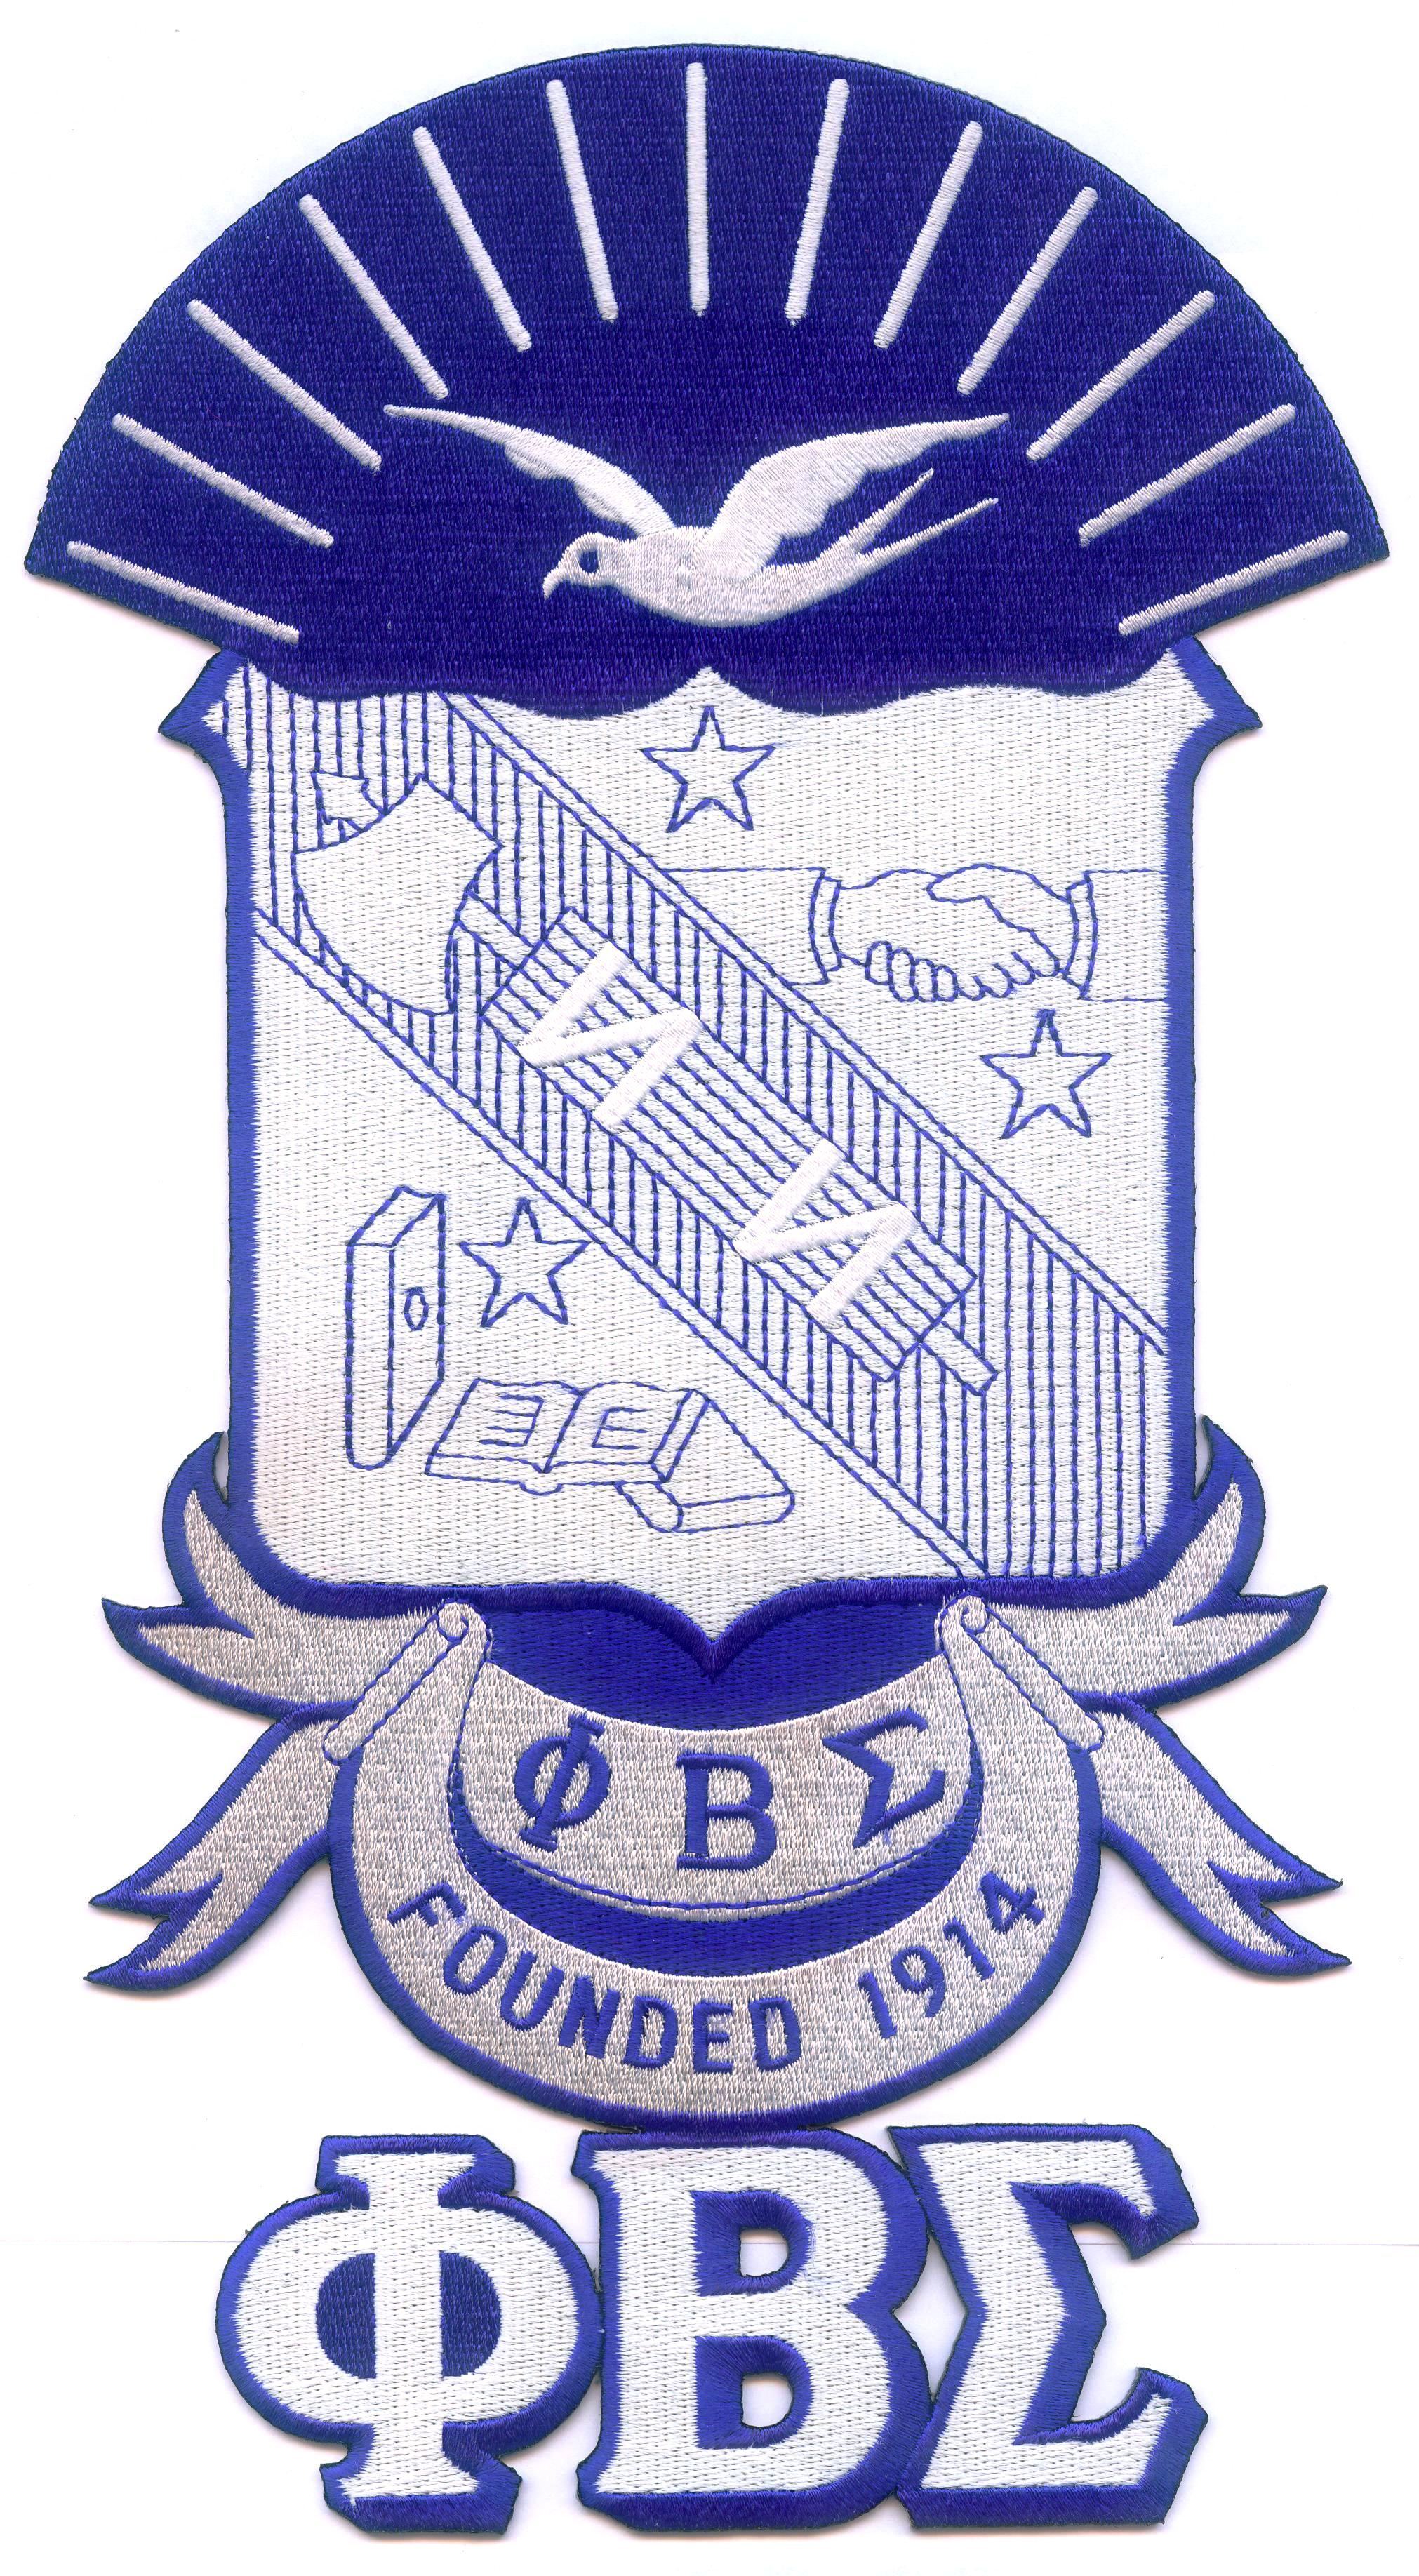 from Cairo sigma phi beta fraternity gay fraternity